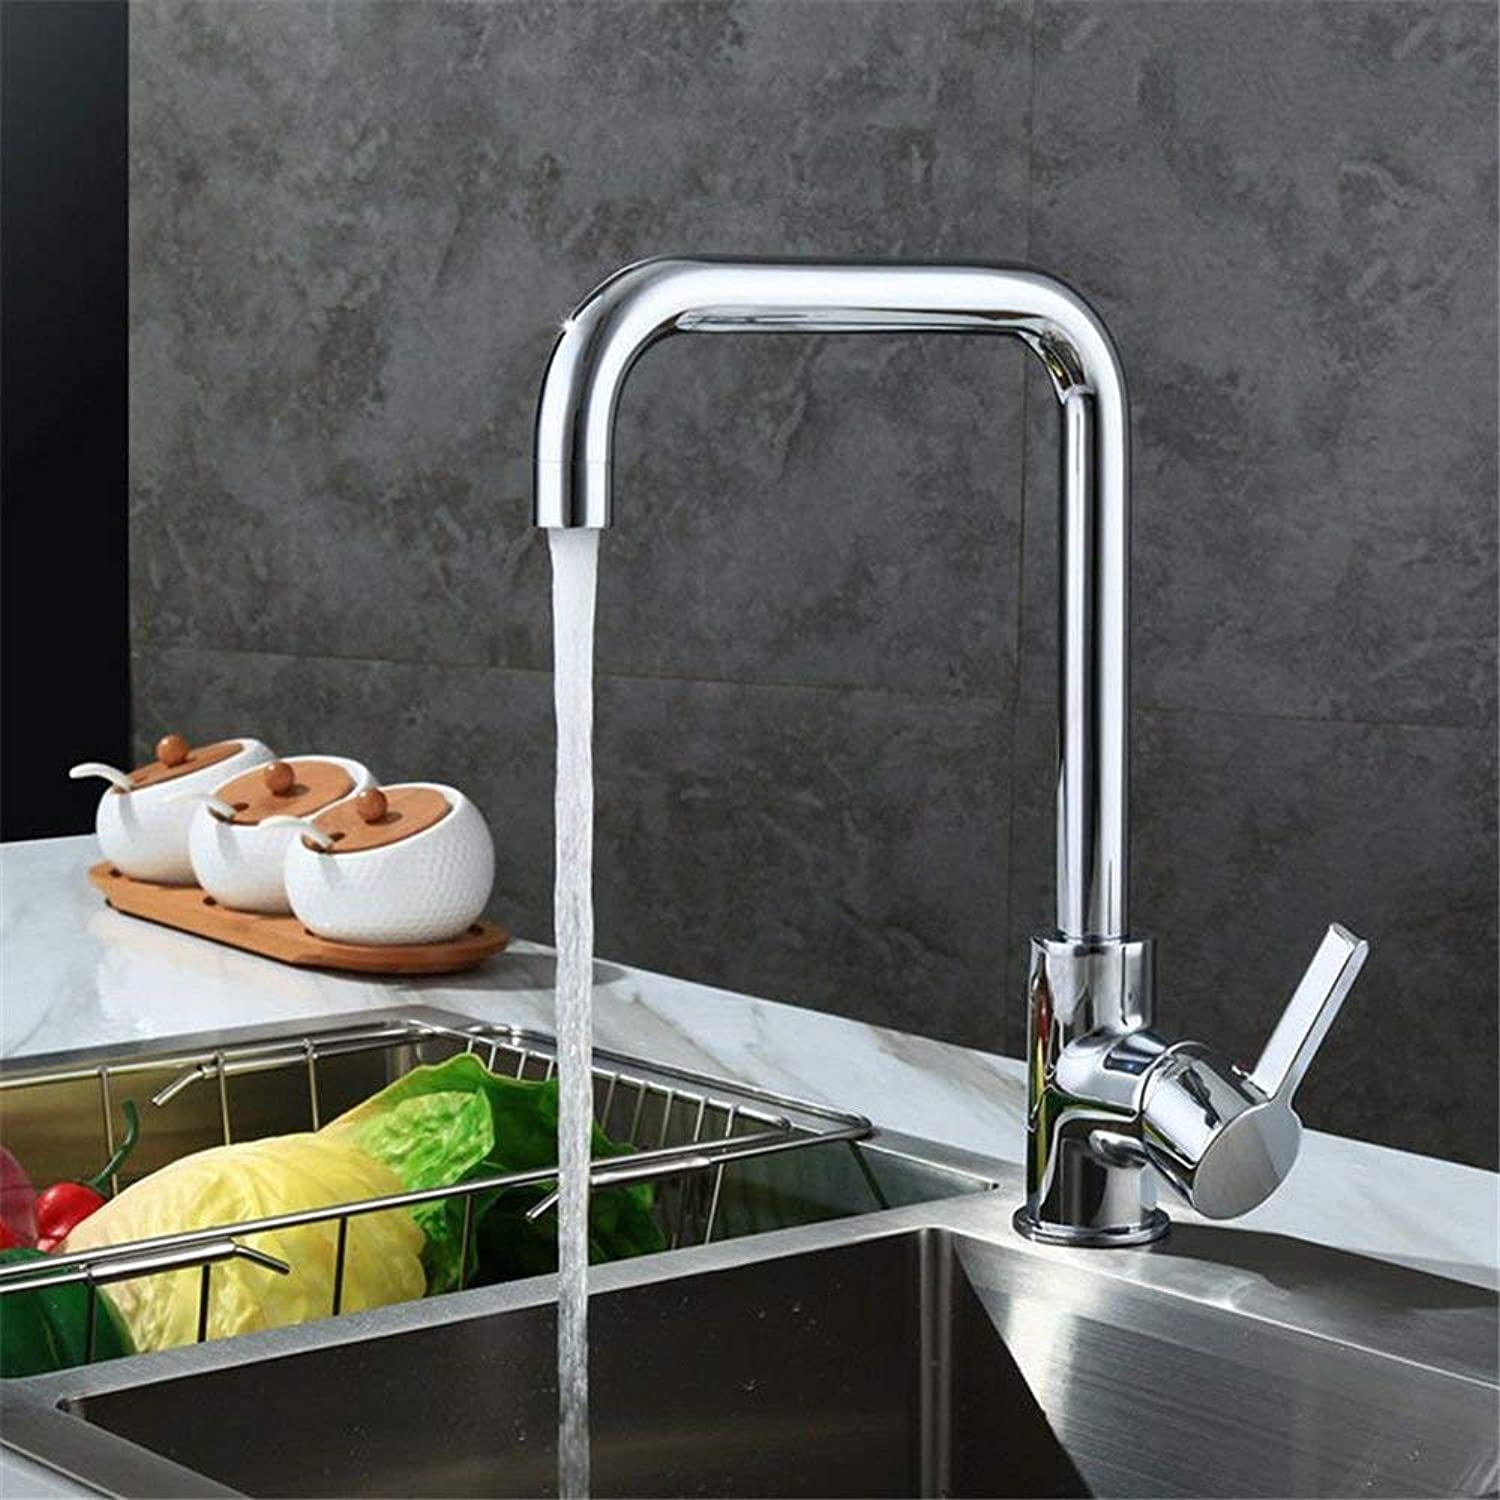 Oudan Kitchen sink taps solid brass kitchen sink tap hot and cold water tall mixer tap basin mixer tap 7 field pipe faucet mixer taps 360 degree redation (color   -, Size   -)